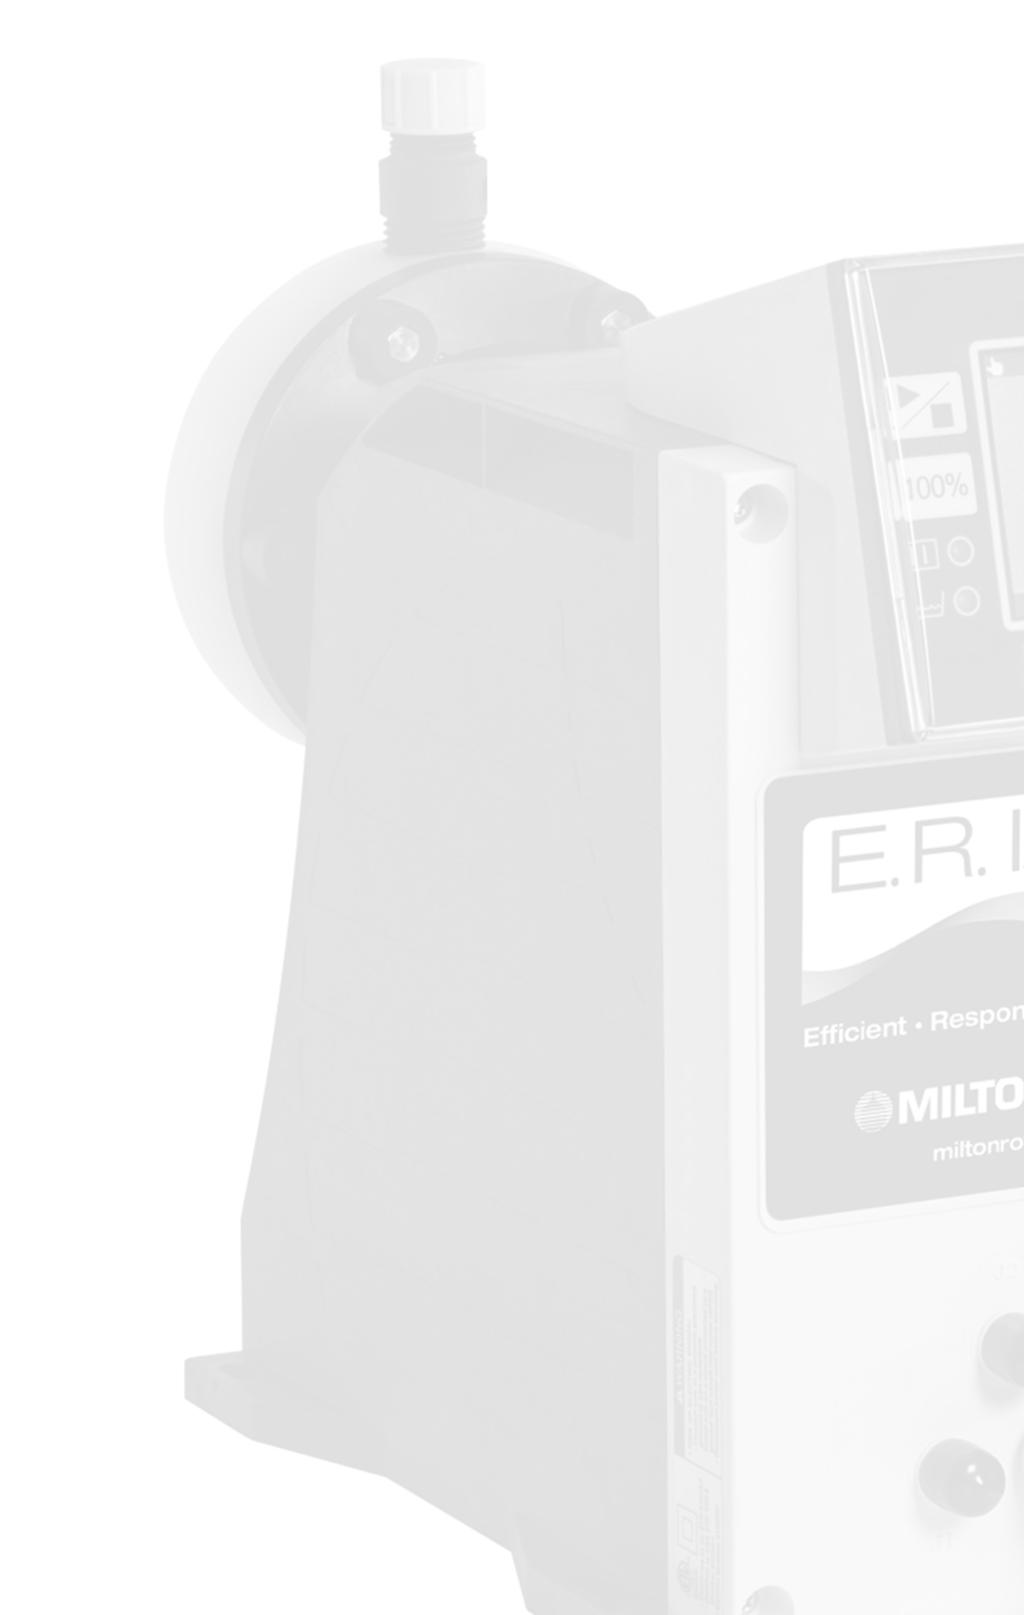 Features and Benefits Milton Roy is setting the standard for accuracy and reliability Milton Roy continues its commitment to innovation and technological advances with the introduction of the E.R.I.